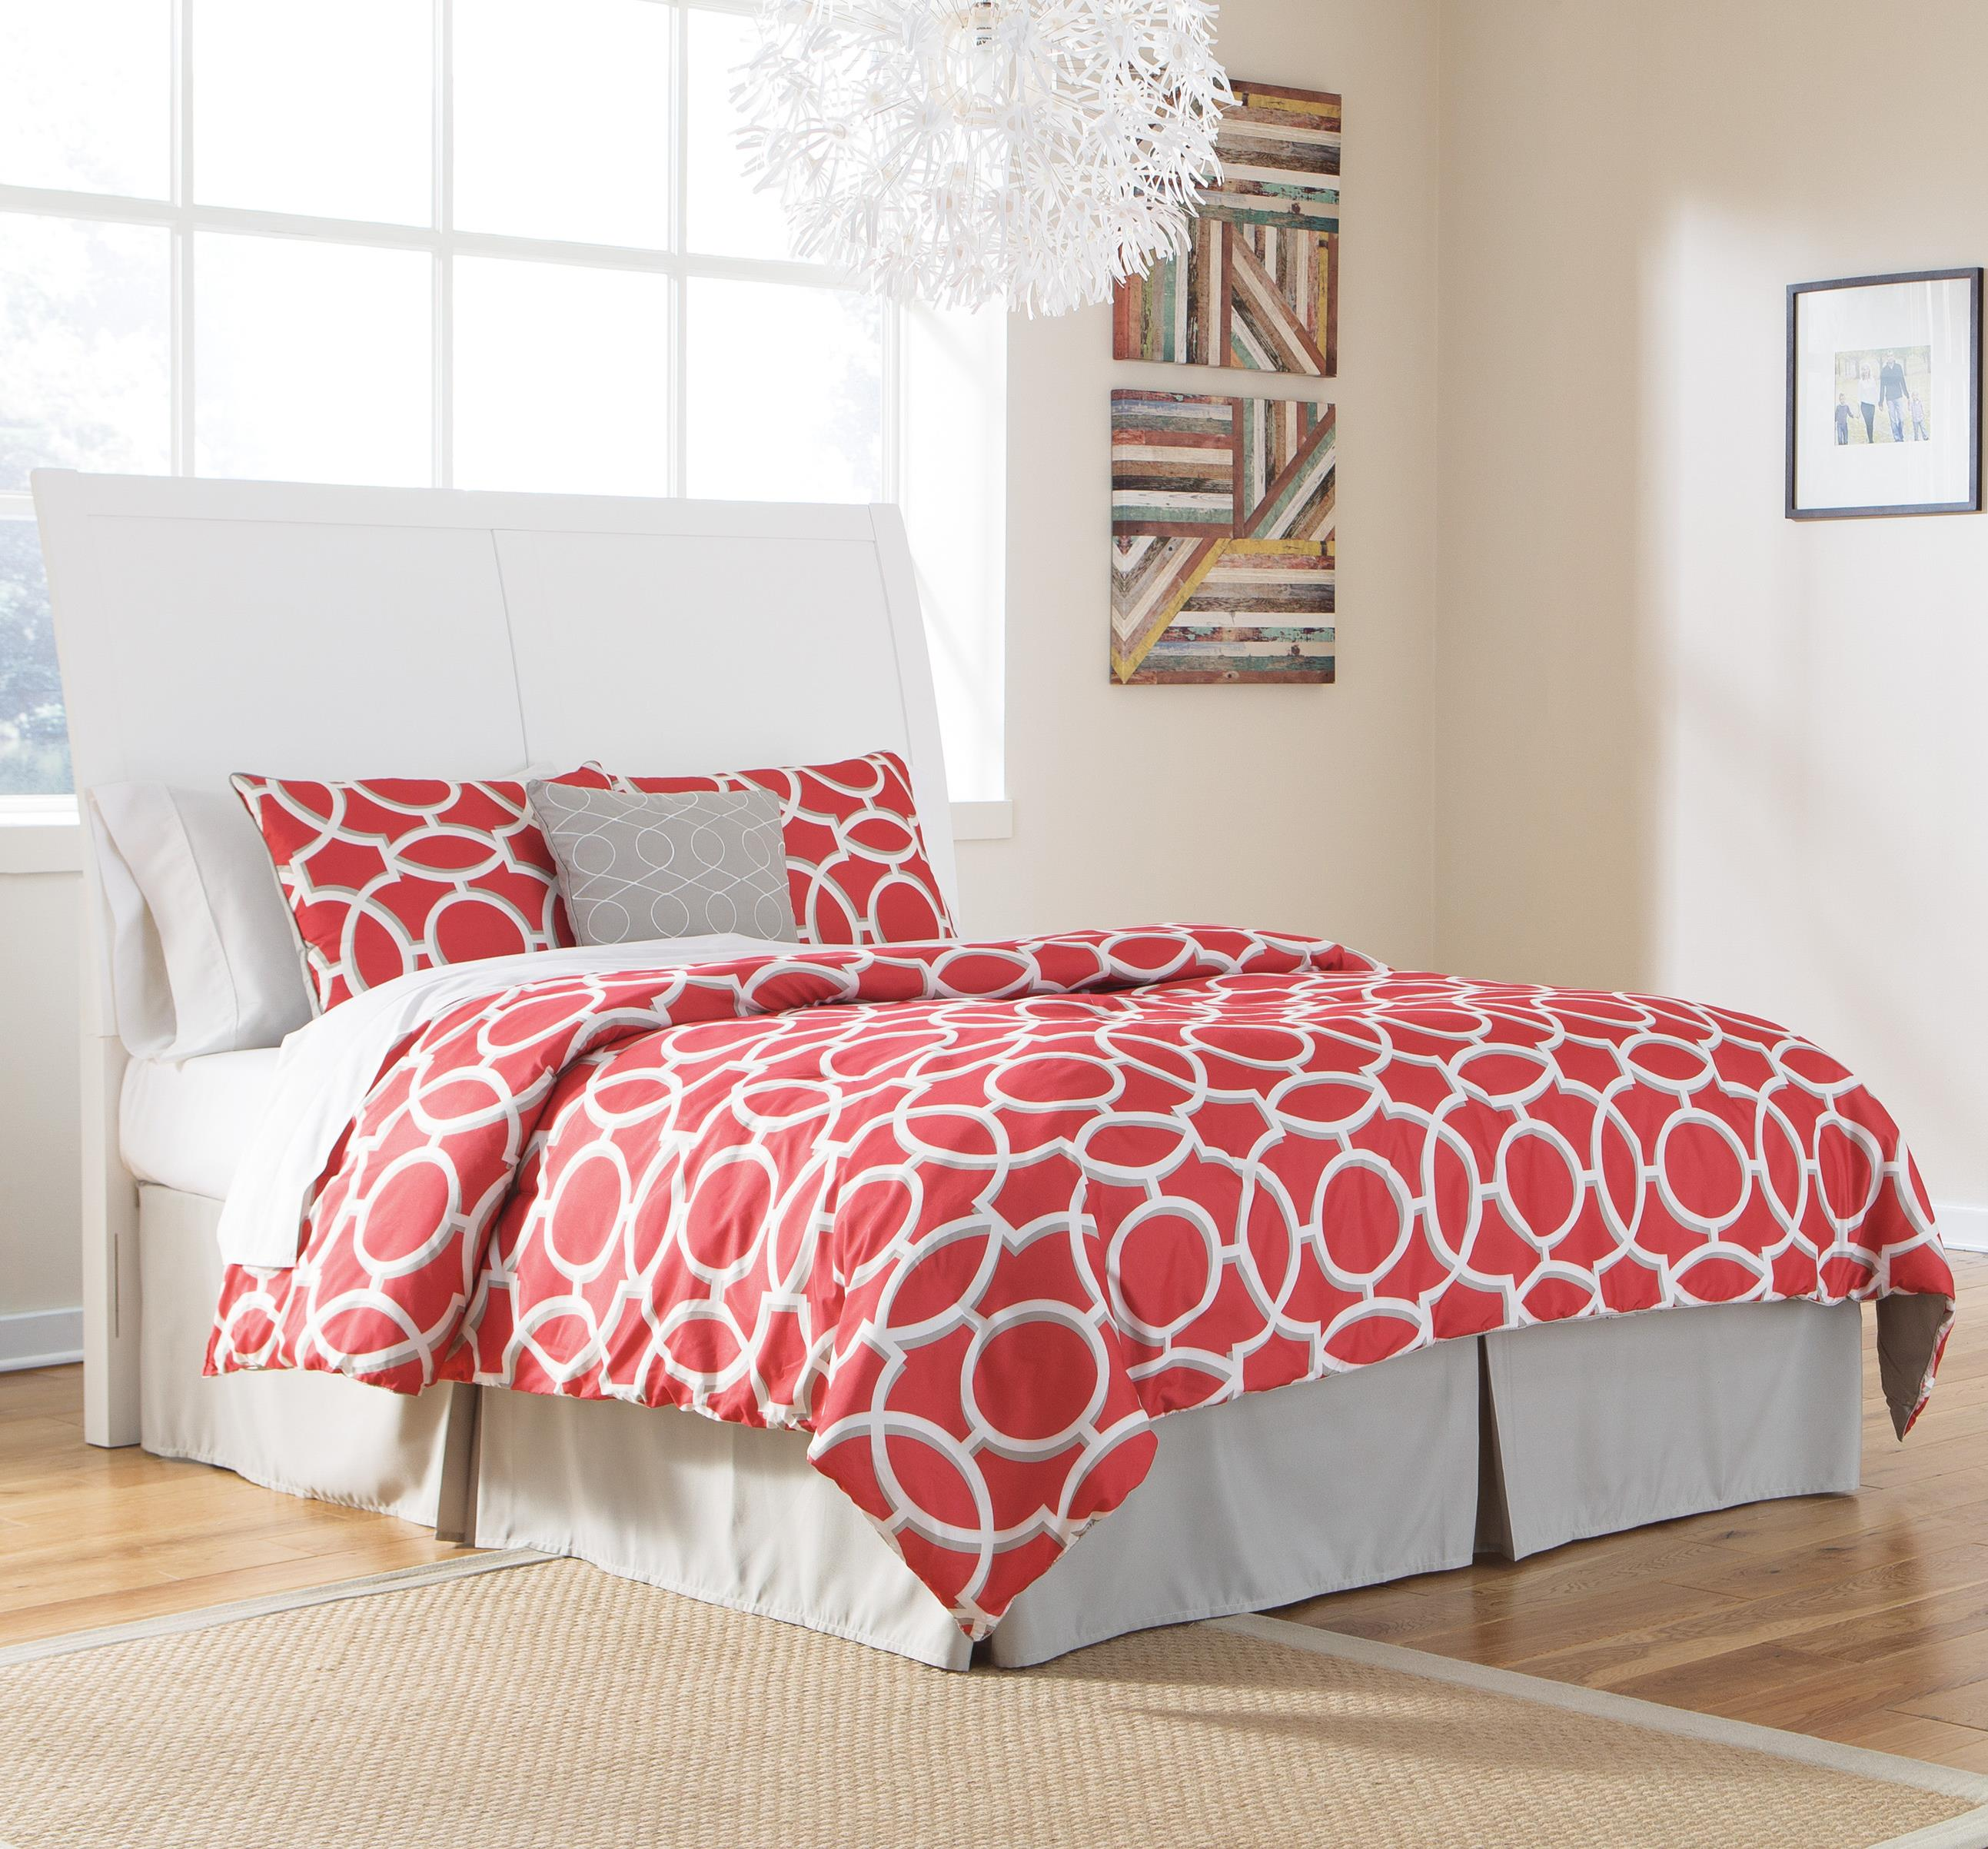 Signature Design by Ashley Langlor King/Cal King Sleigh Headboard - Item Number: B592-58